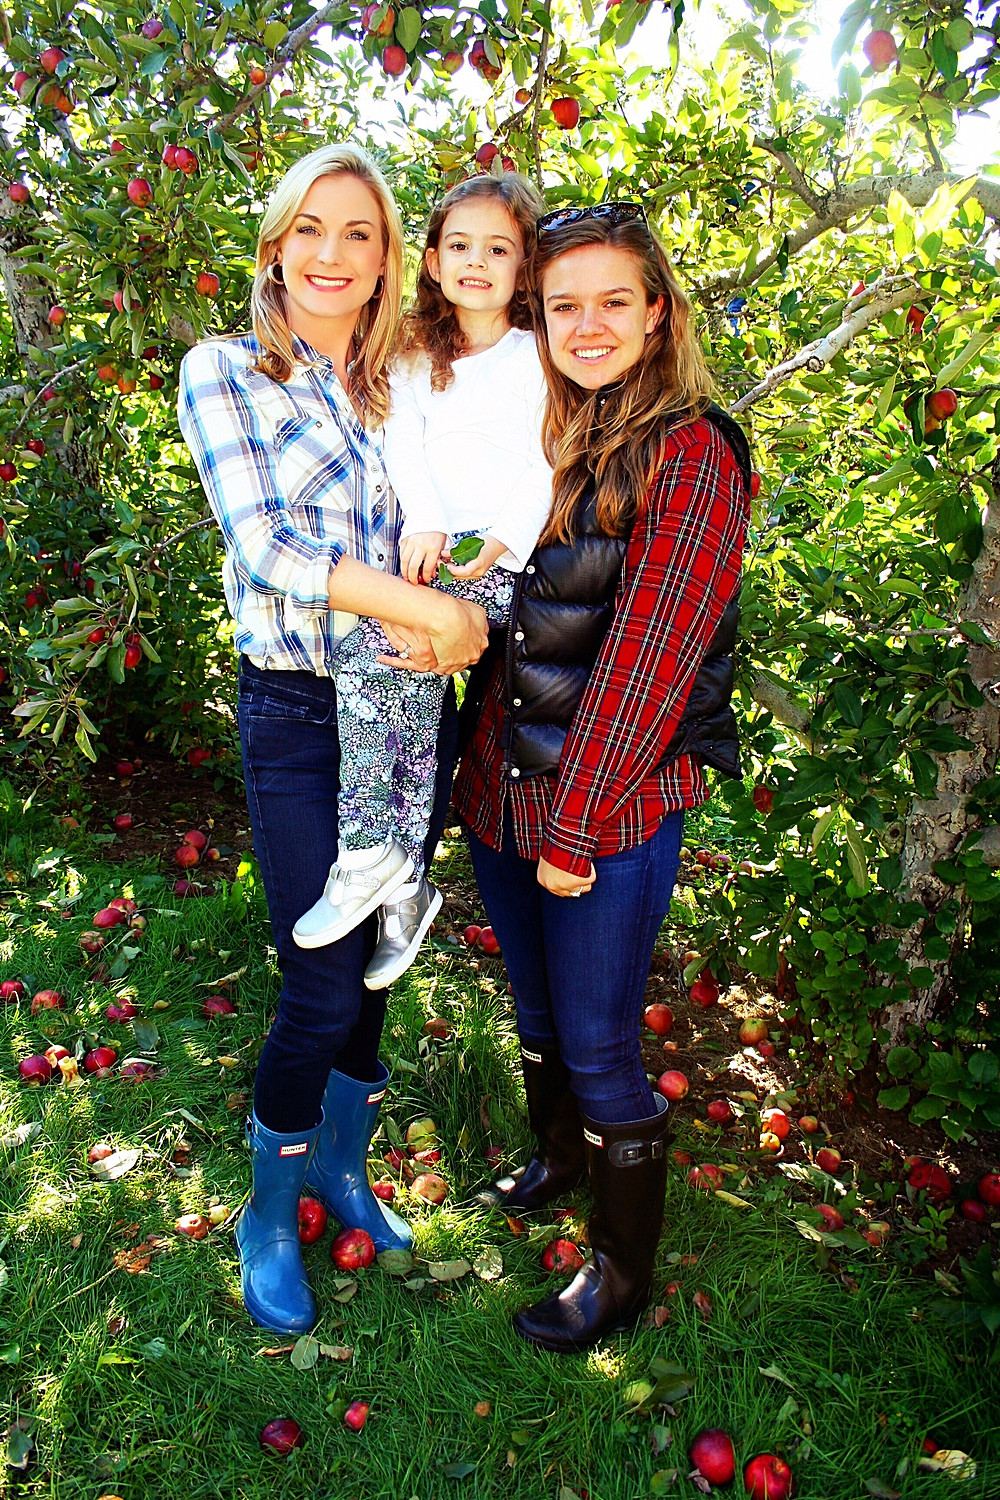 Apple Orchard Photos at Honey Pot Hill Orchards, Jenny Cox Holman, Amazing Apple Orchard Adventures